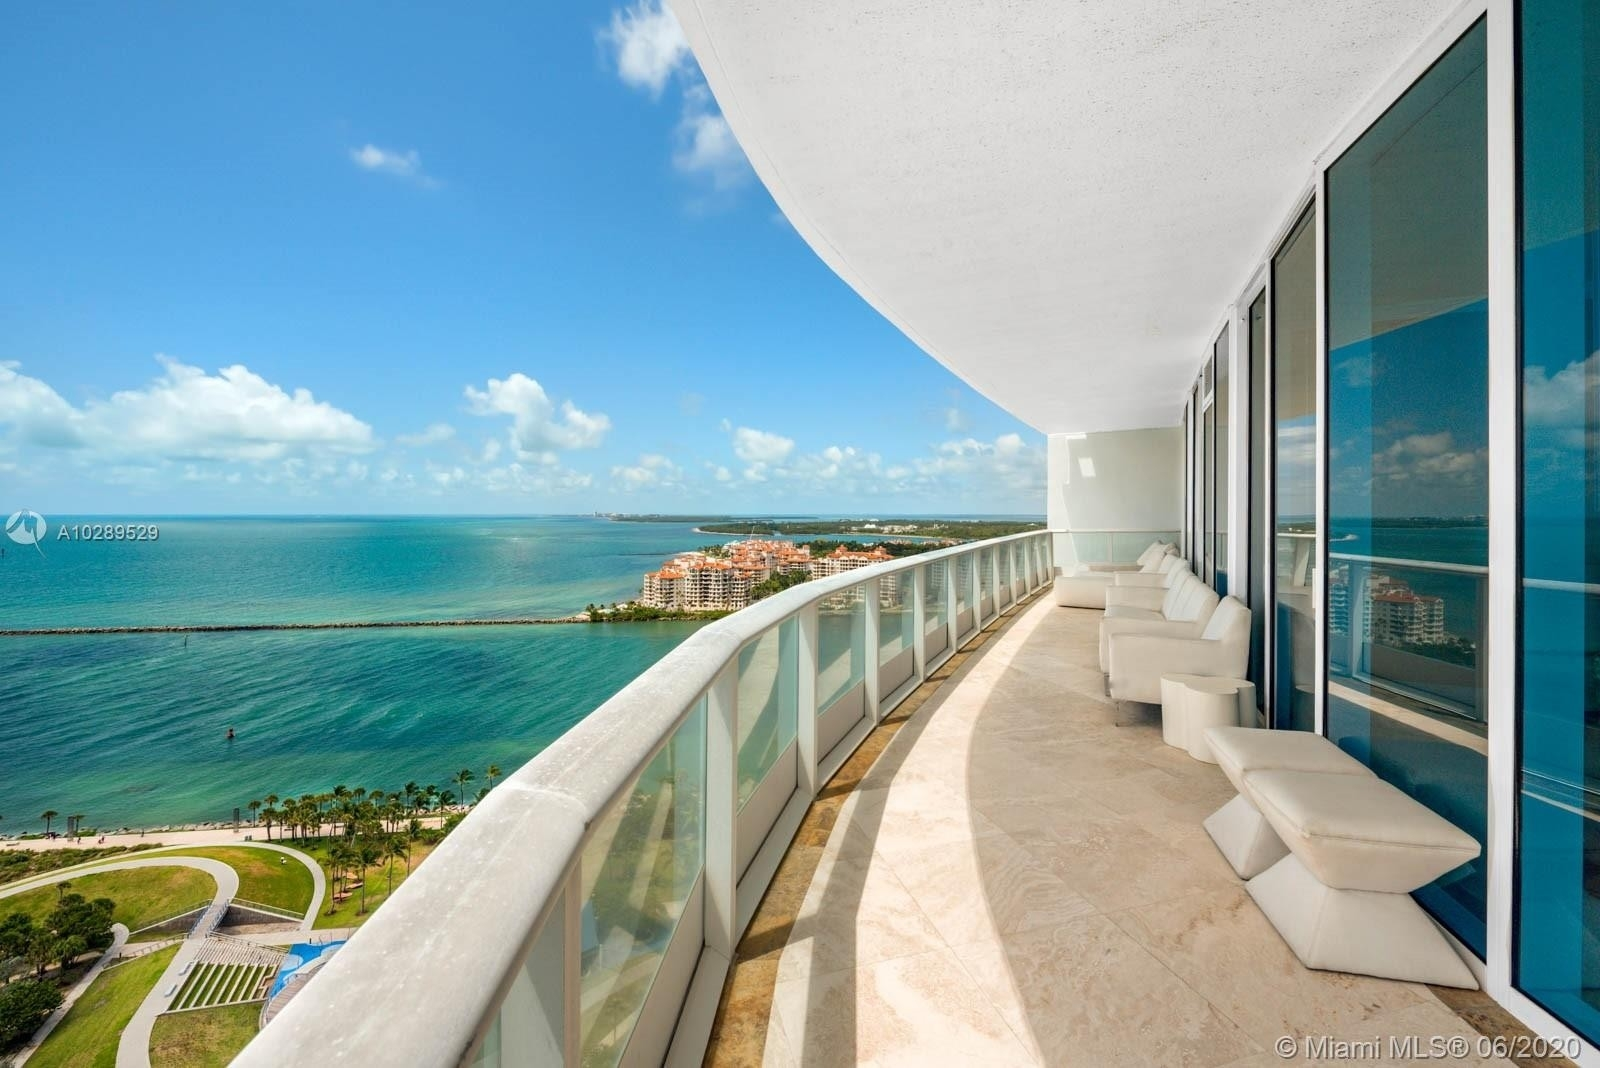 Property at 100 S Pointe Dr , 2505 South Point, Miami Beach, FL 33139